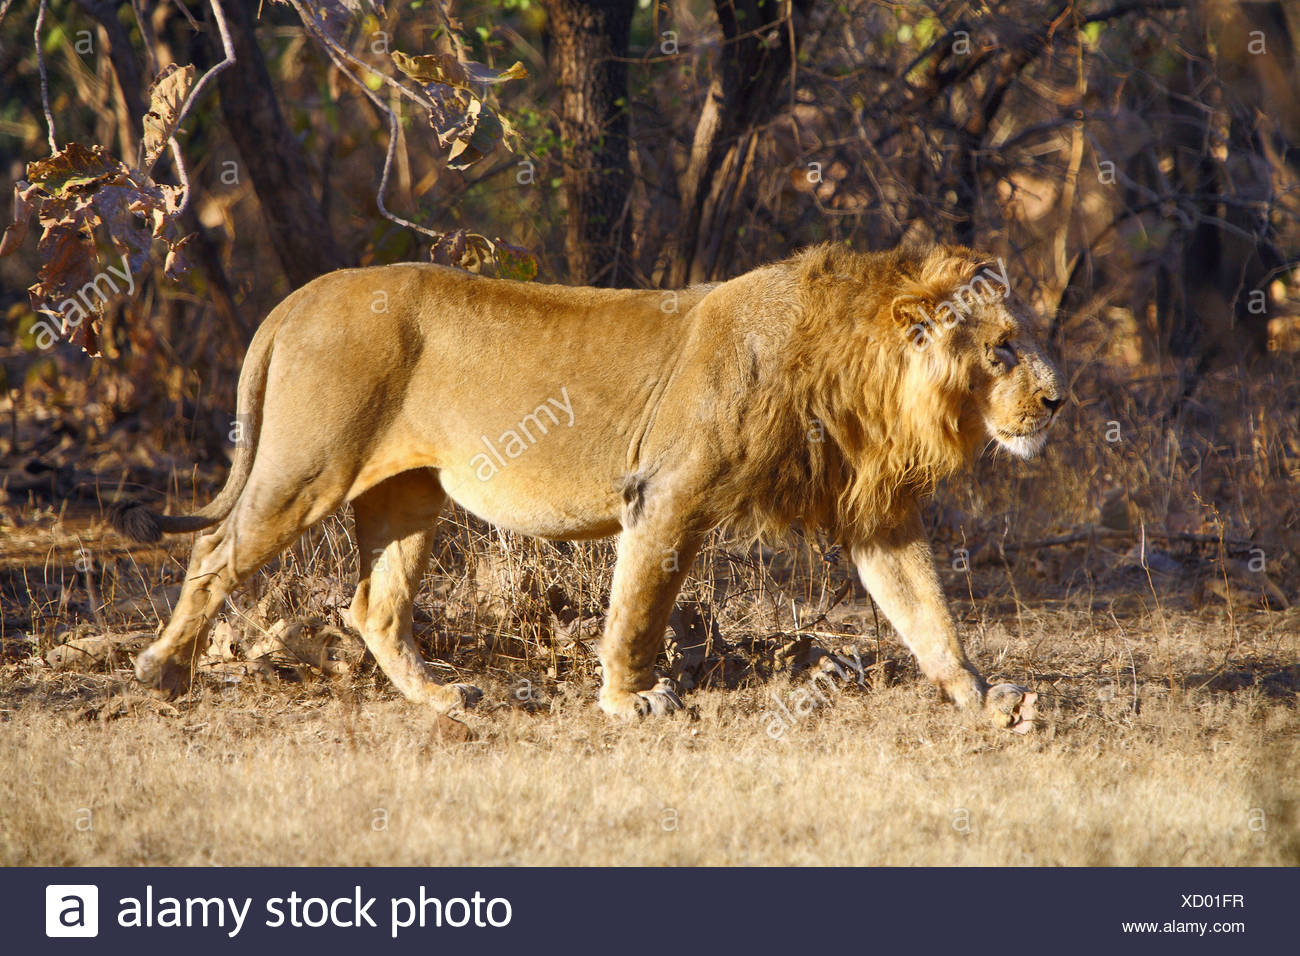 Asiatic Lion (Panthera leo persica) walking in the forest at Gir National Park Gujarat India - Stock Image